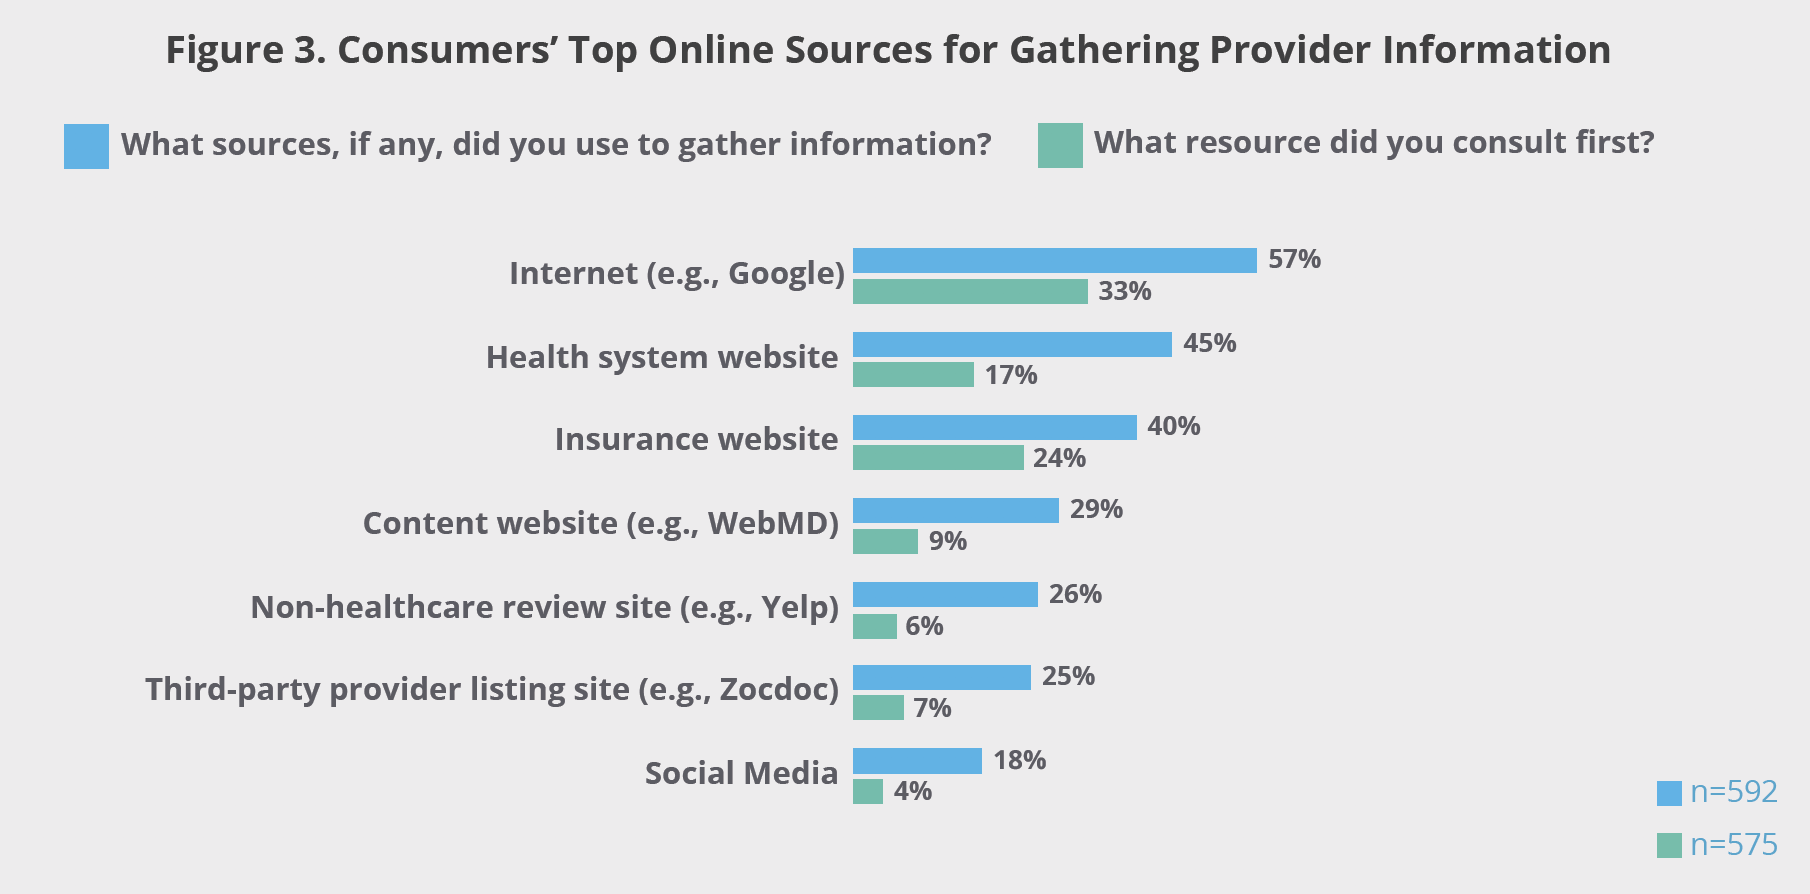 Figure 3. Consumers' Top Online Sources for Gathering Provider Information